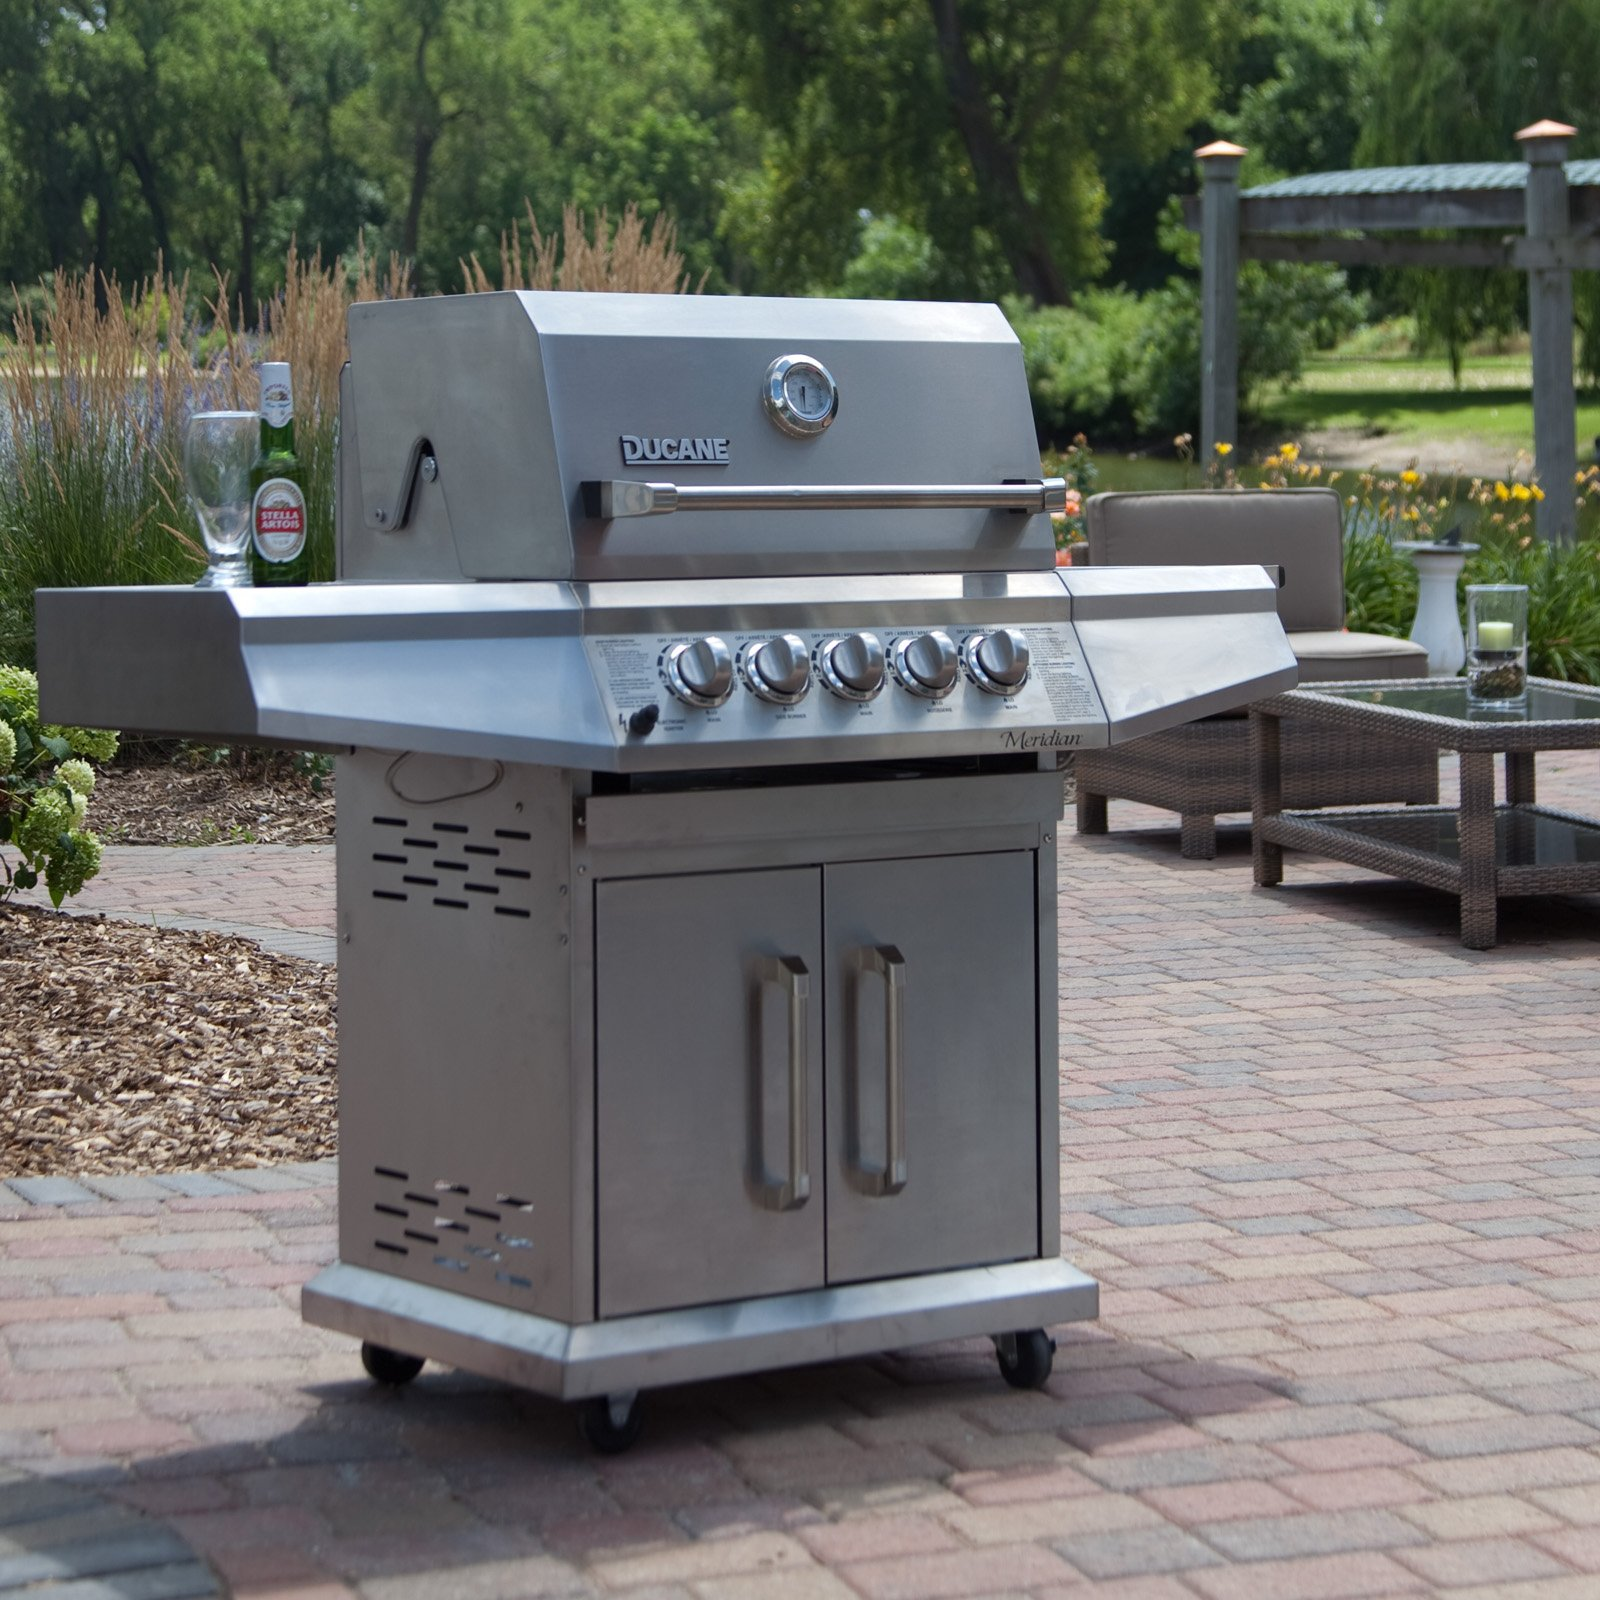 Choosing An Outdoor Grill  About Outdoor Grilling